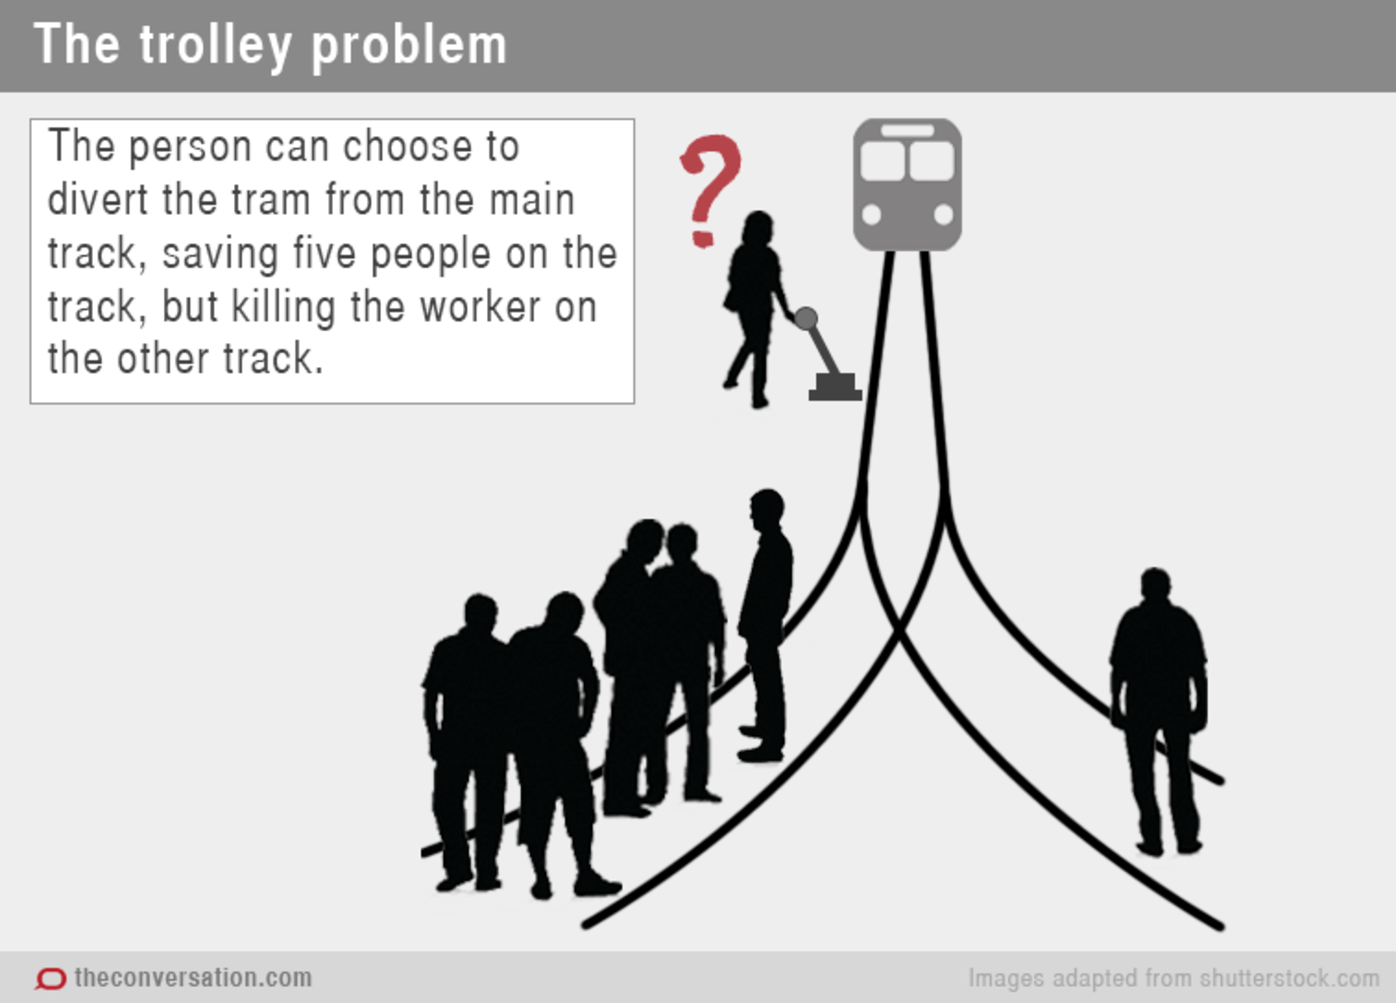 The Trolley Dilemma: Would You Kill One Person To Save Five